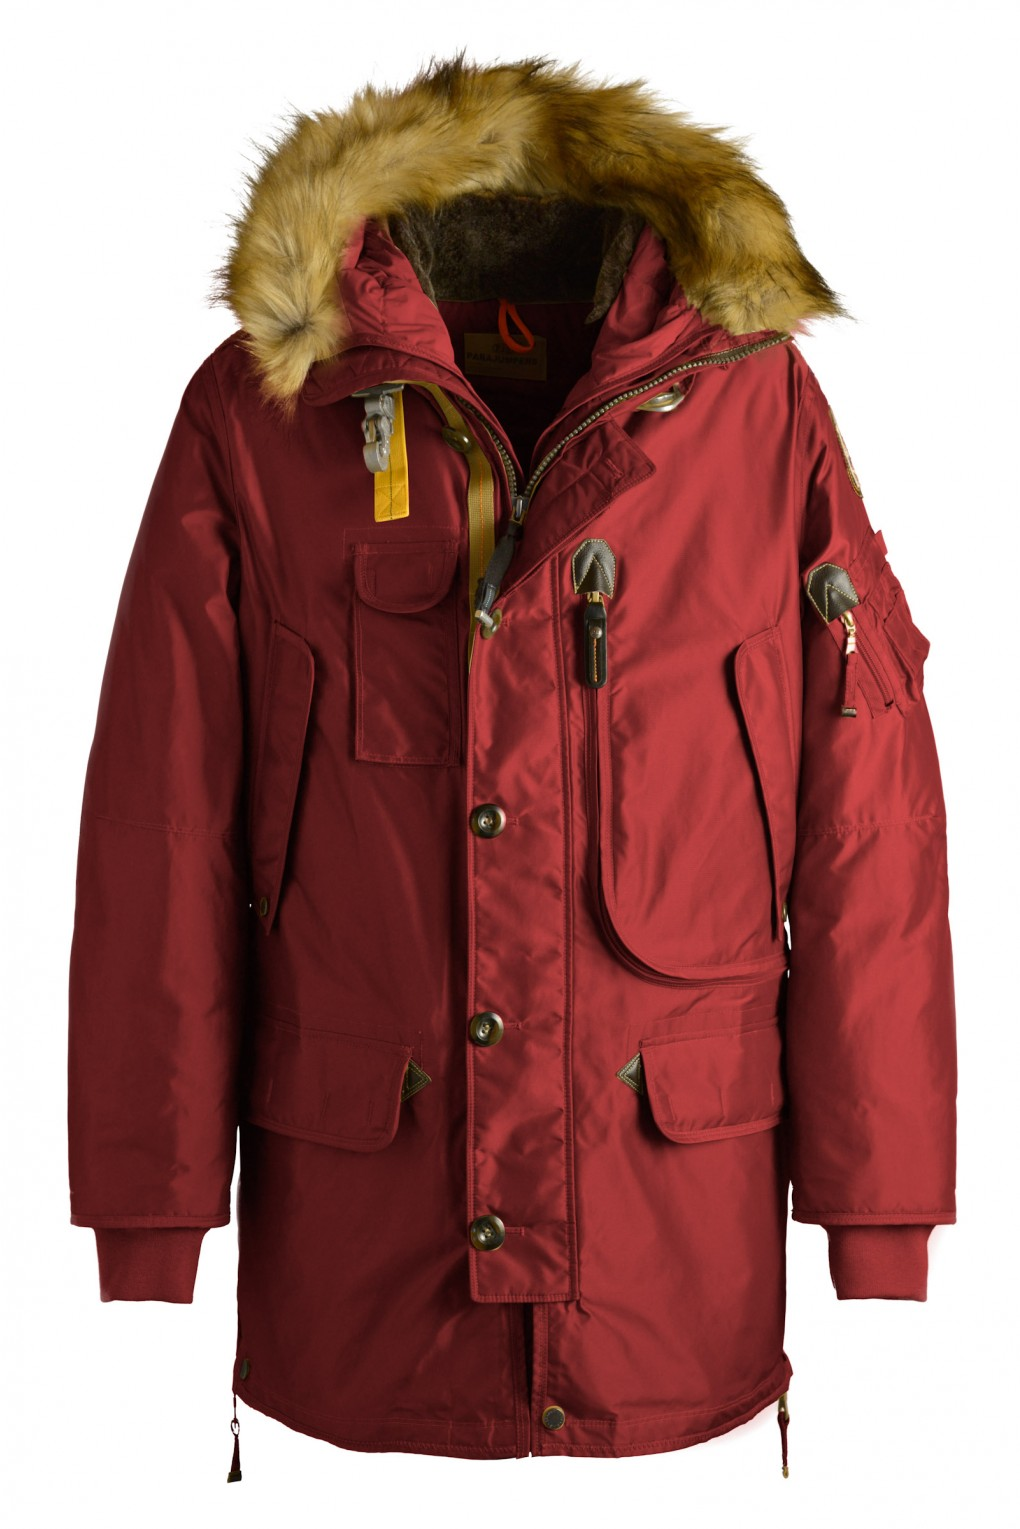 parajumpers KODIAK ECO man outerwear Red